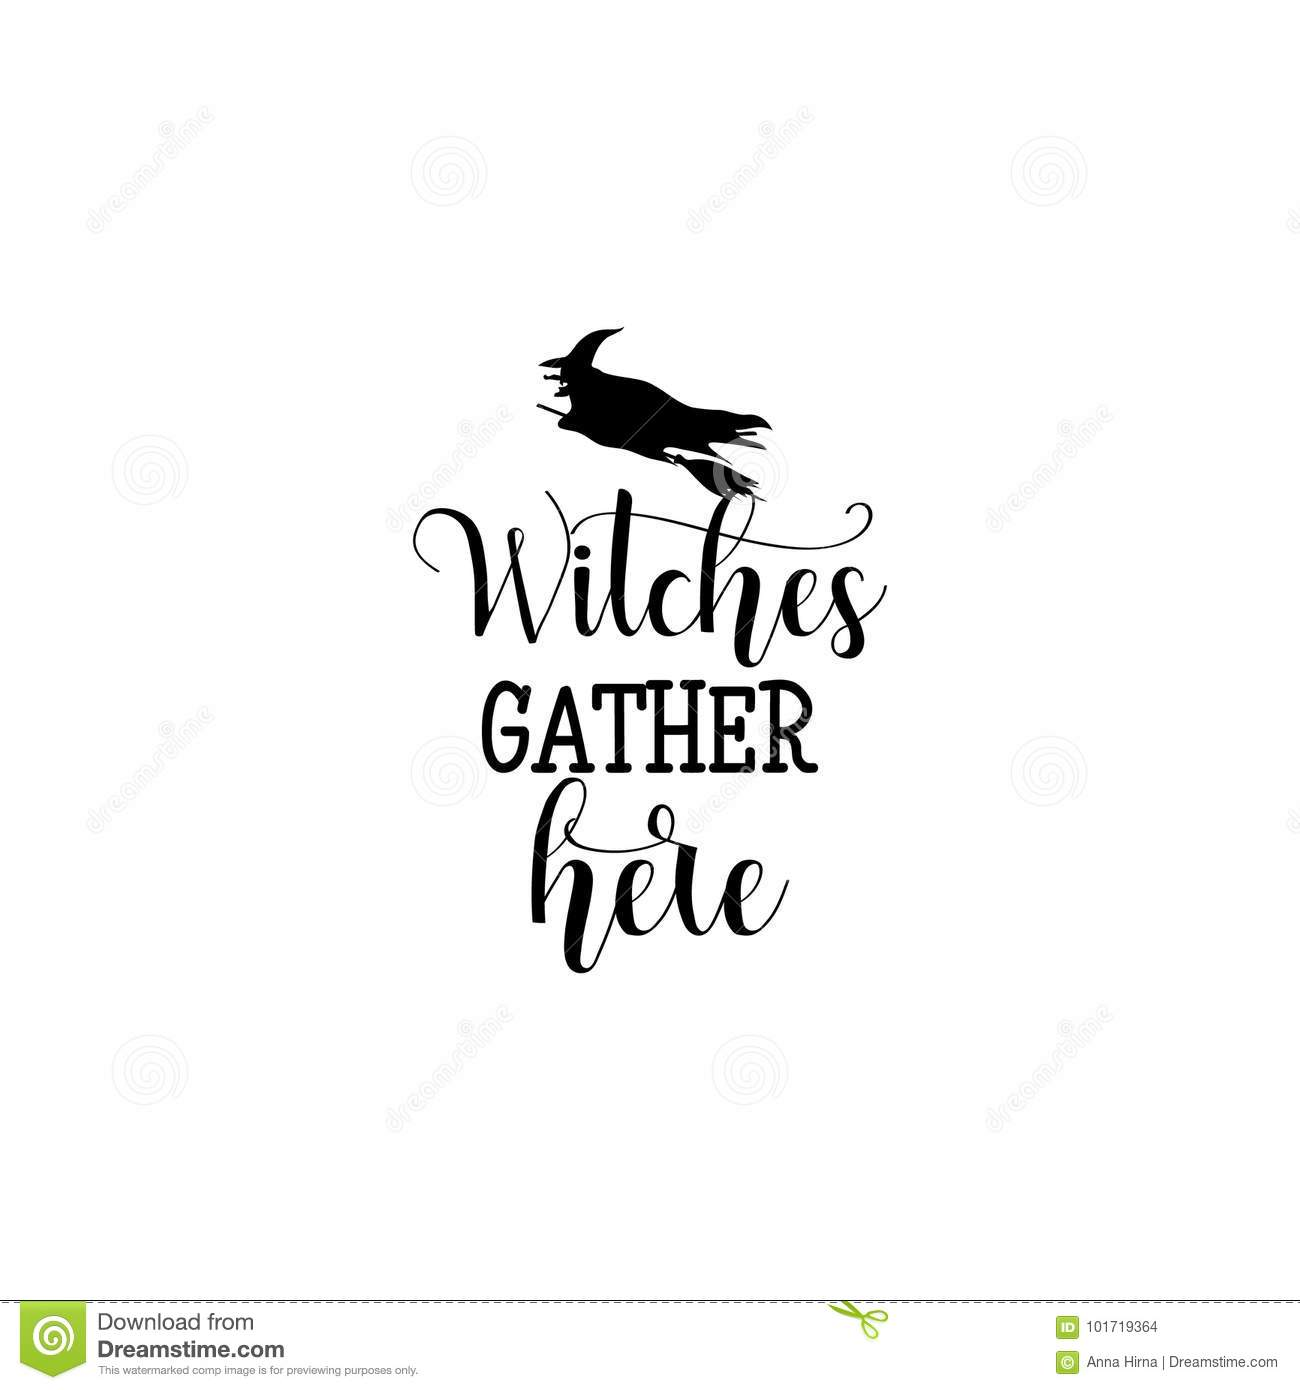 Witches gather here hand drawn lettering vector illustration.